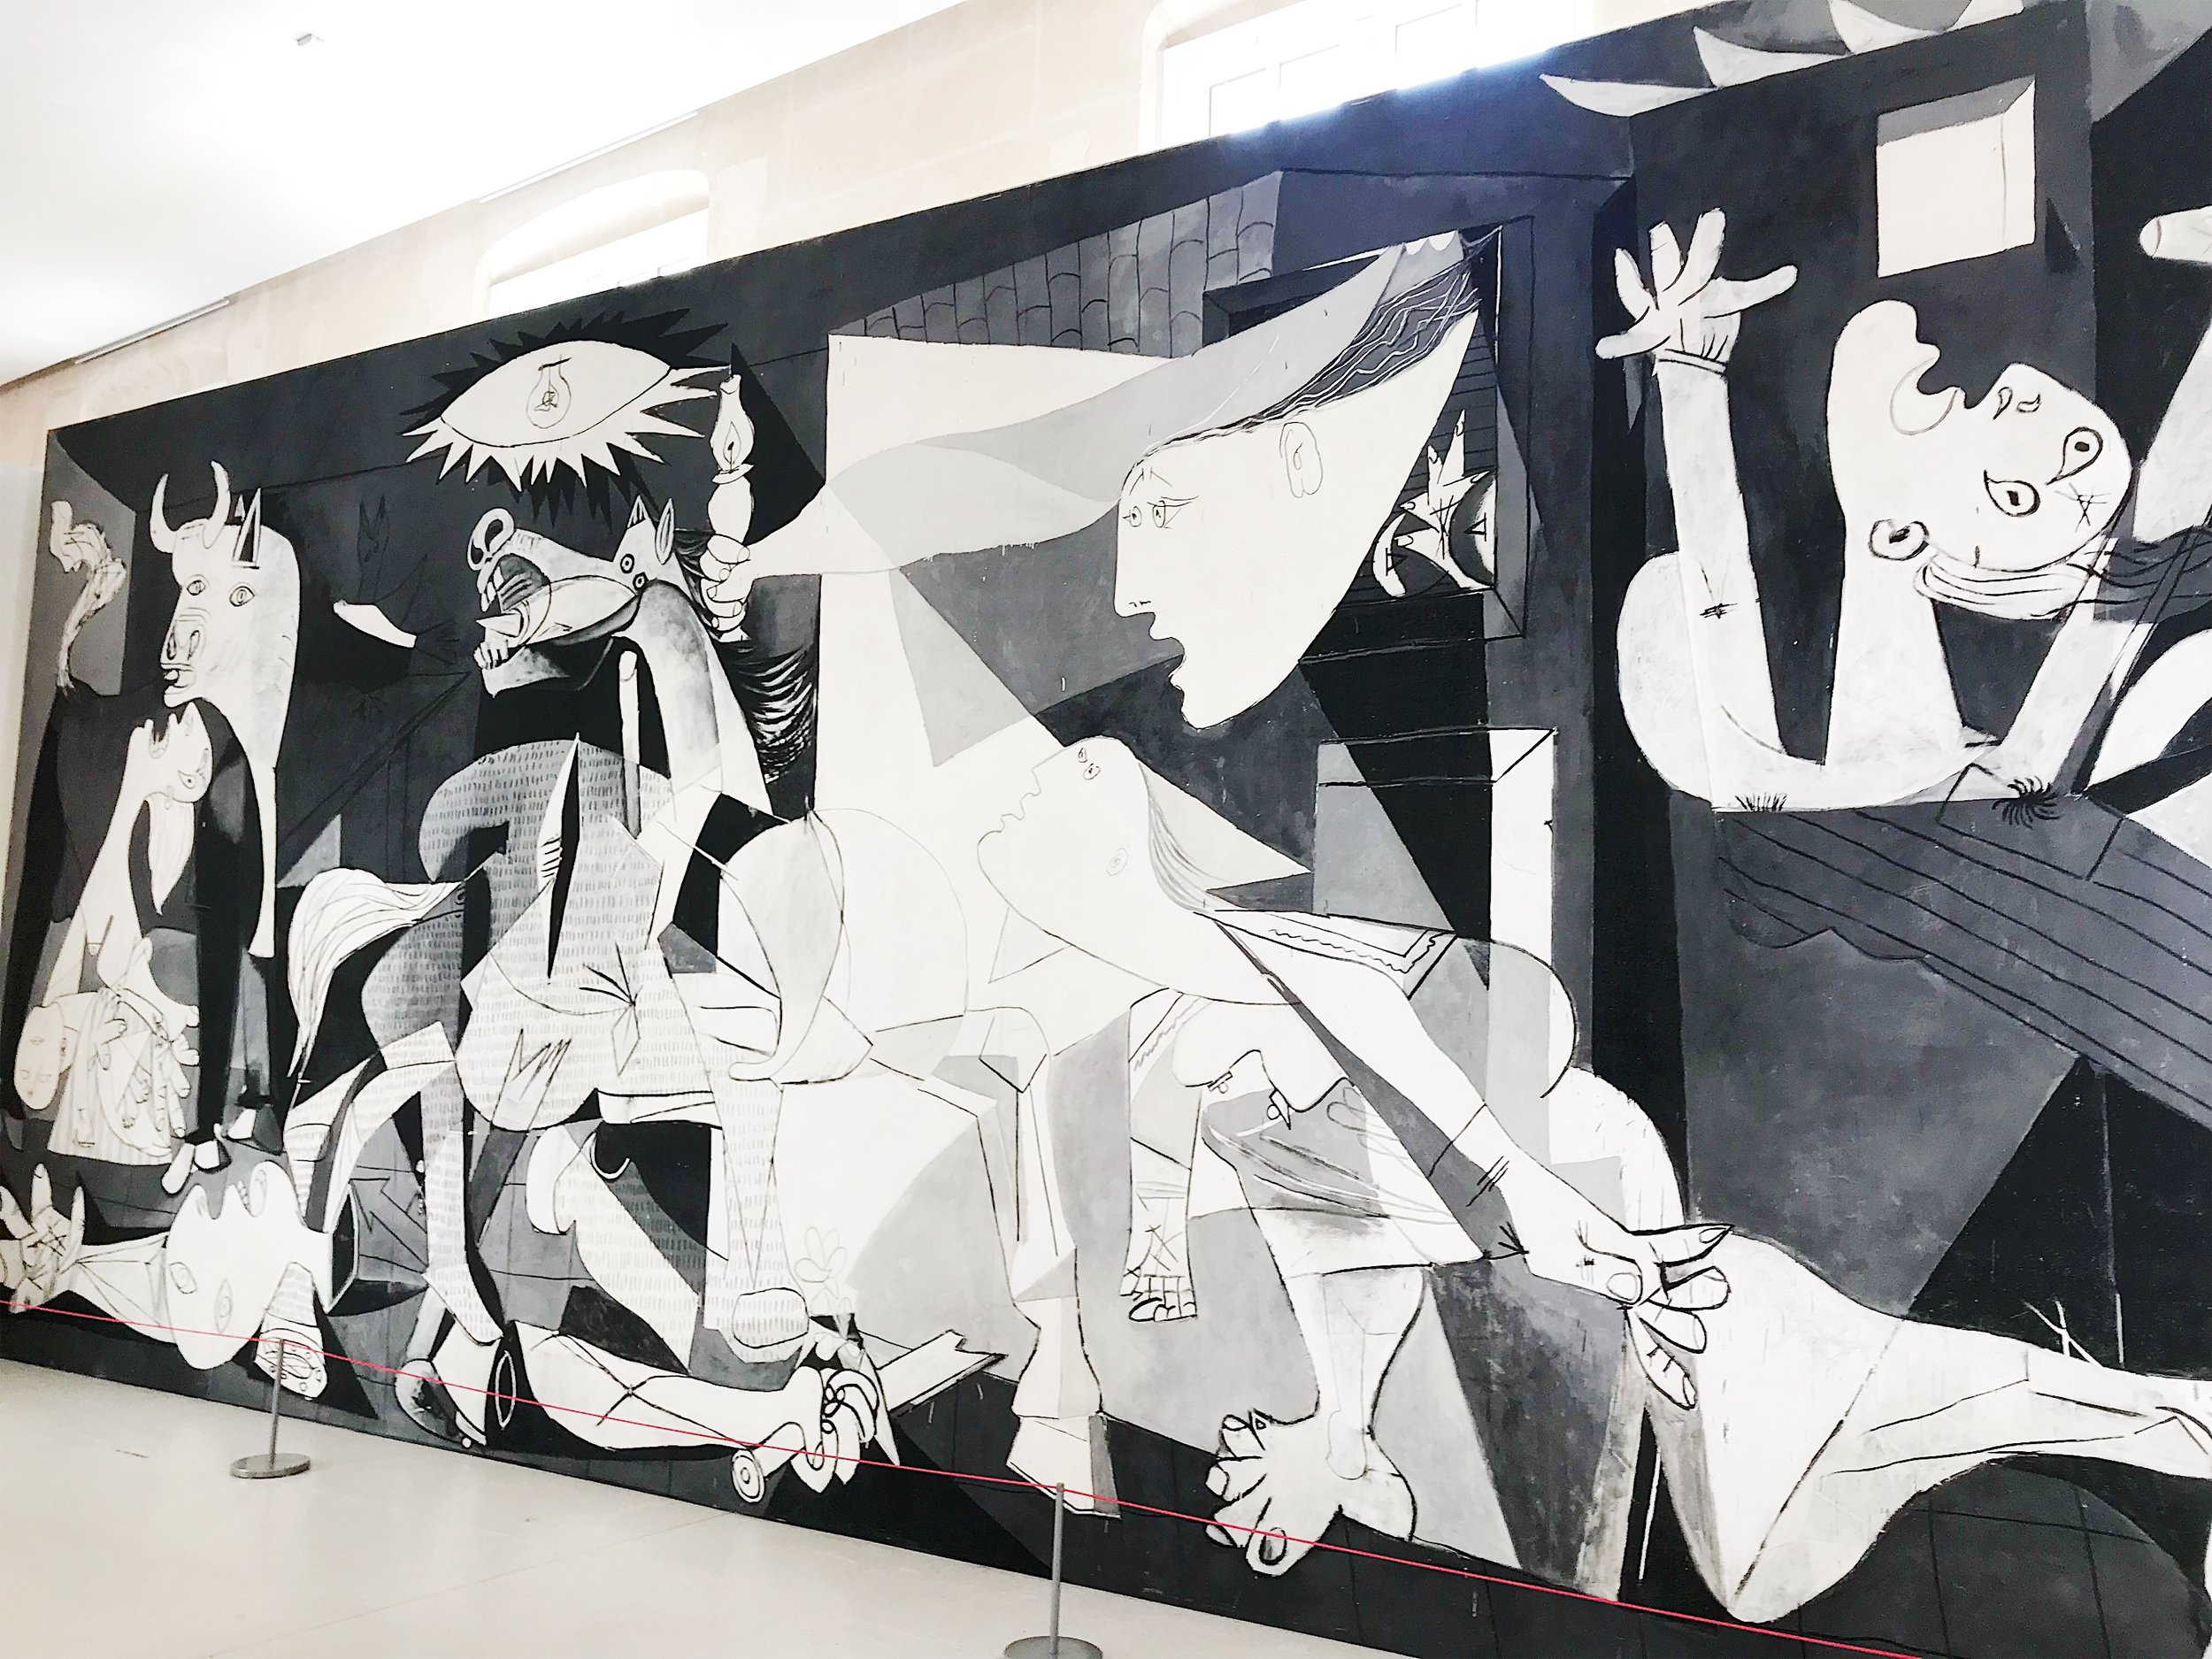 Guernica, 1937, Musee Picasso, 3rd Arr., Paris